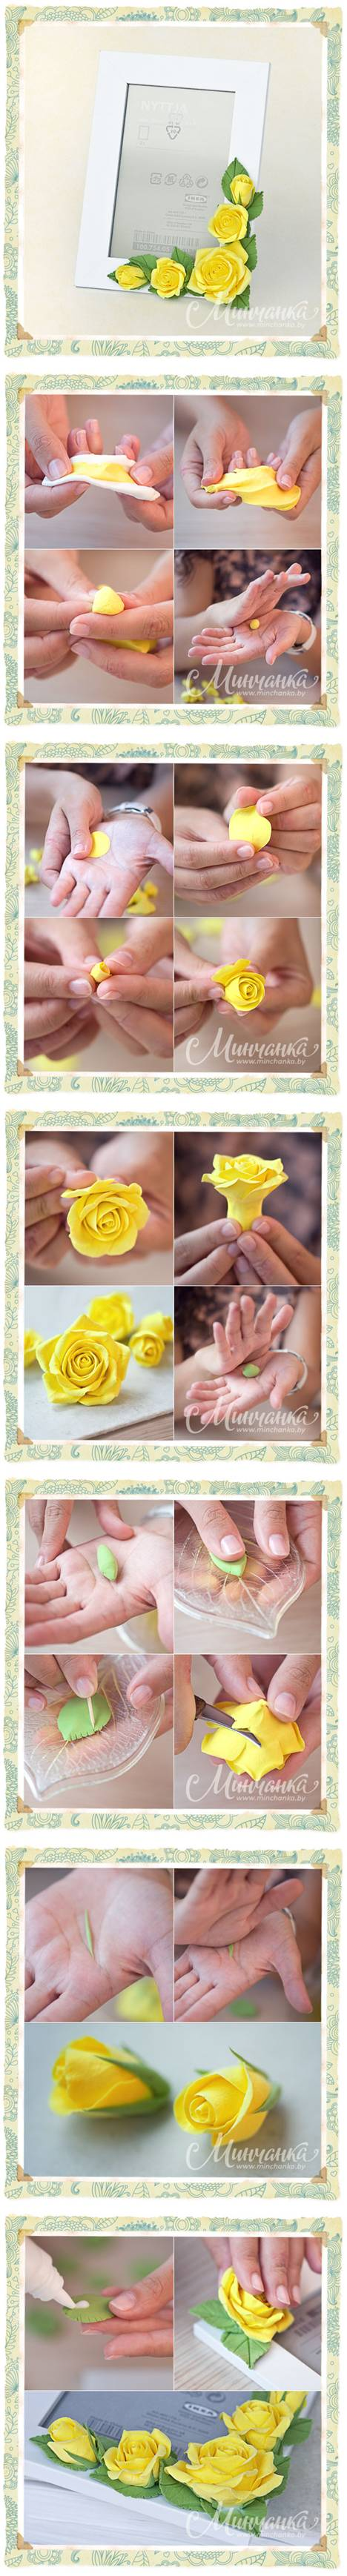 How To Make Beautiful Clay Yellow Rose step by step DIY tutorial instructions